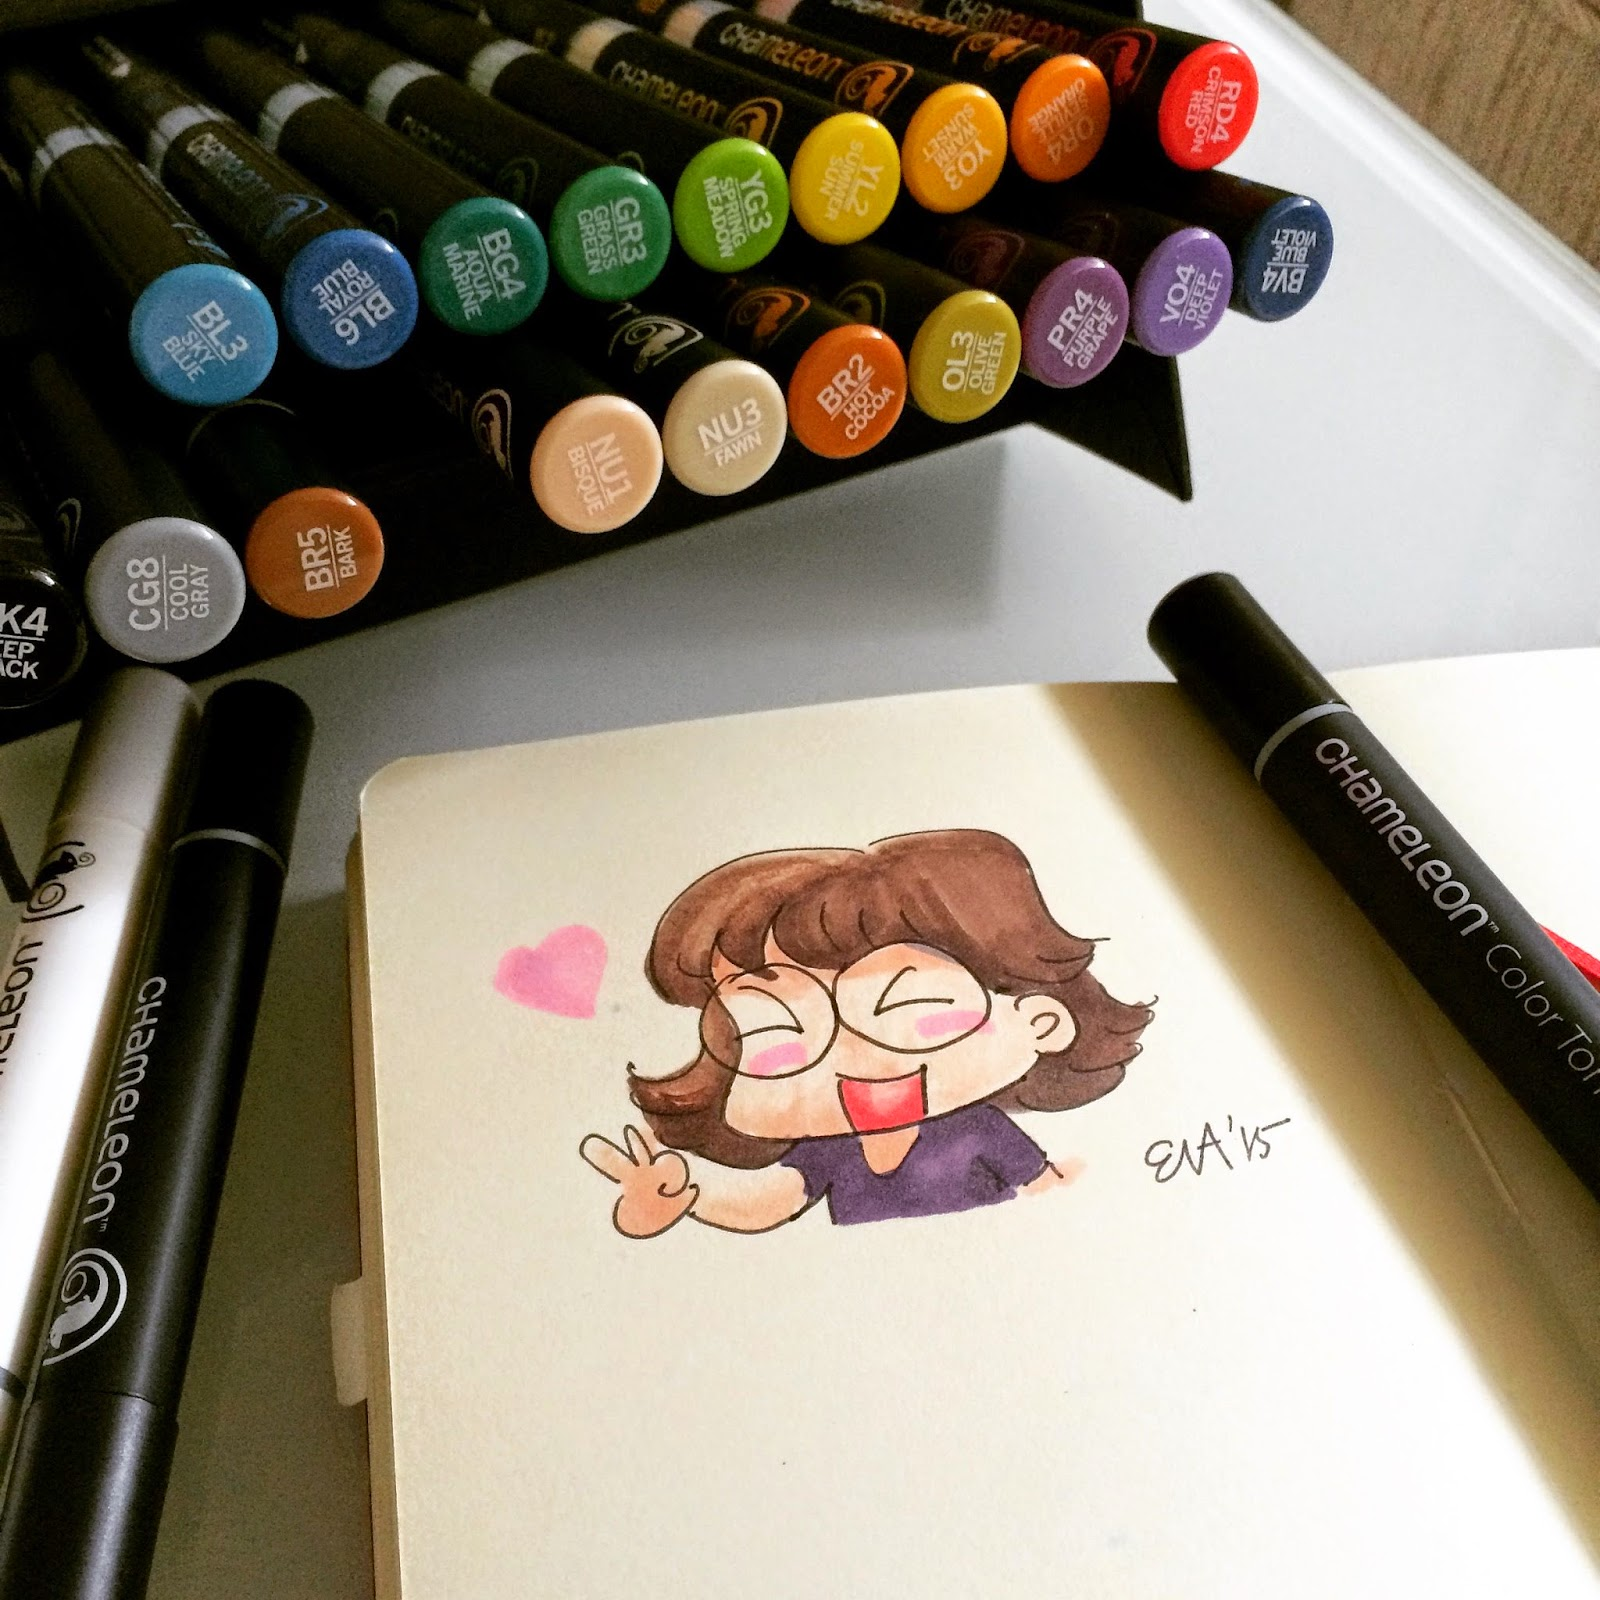 First Impression, Demo and Review of Chameleon marker pens